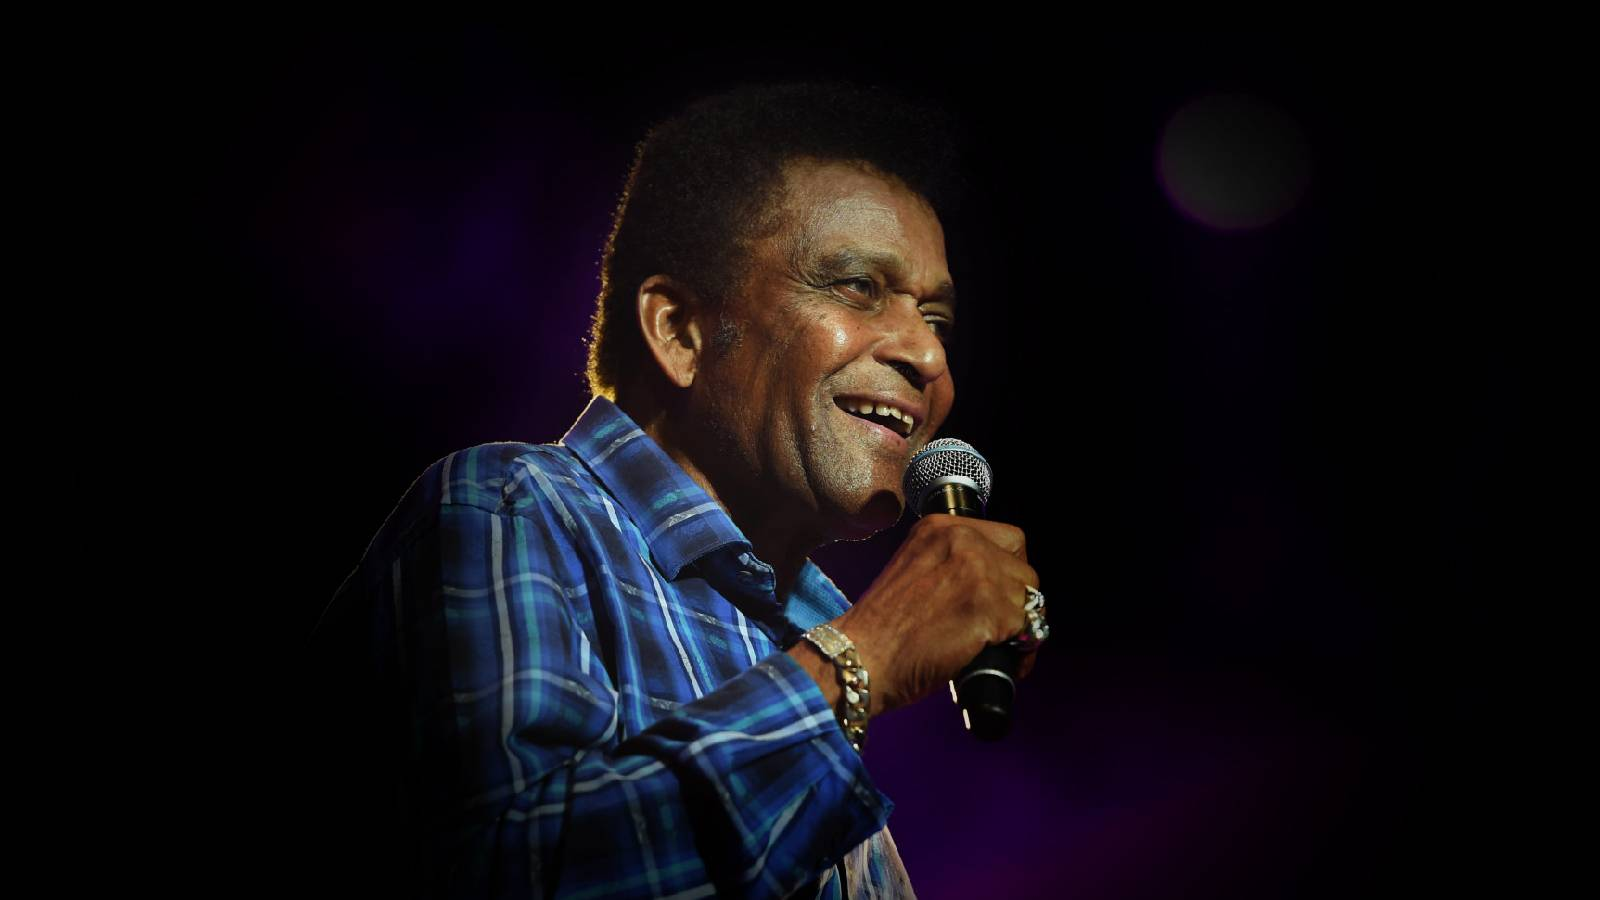 Charley Pride (Rescheduled from 7/26)